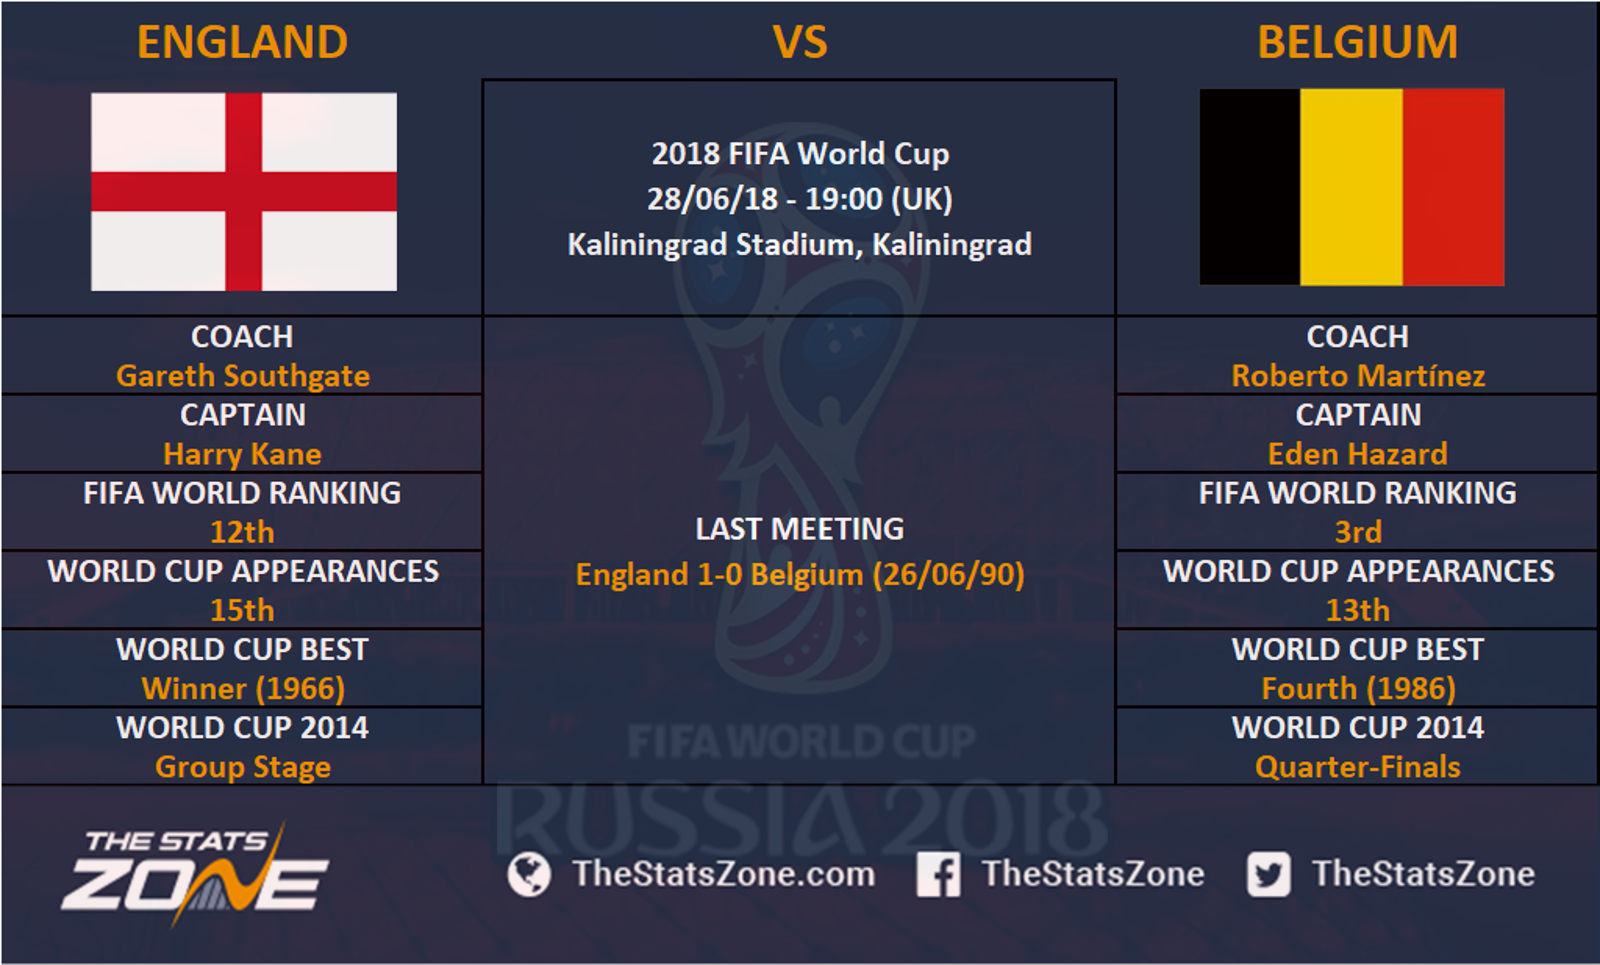 2018 Fifa World Cup England Vs Belgium Preview The Stats Zone